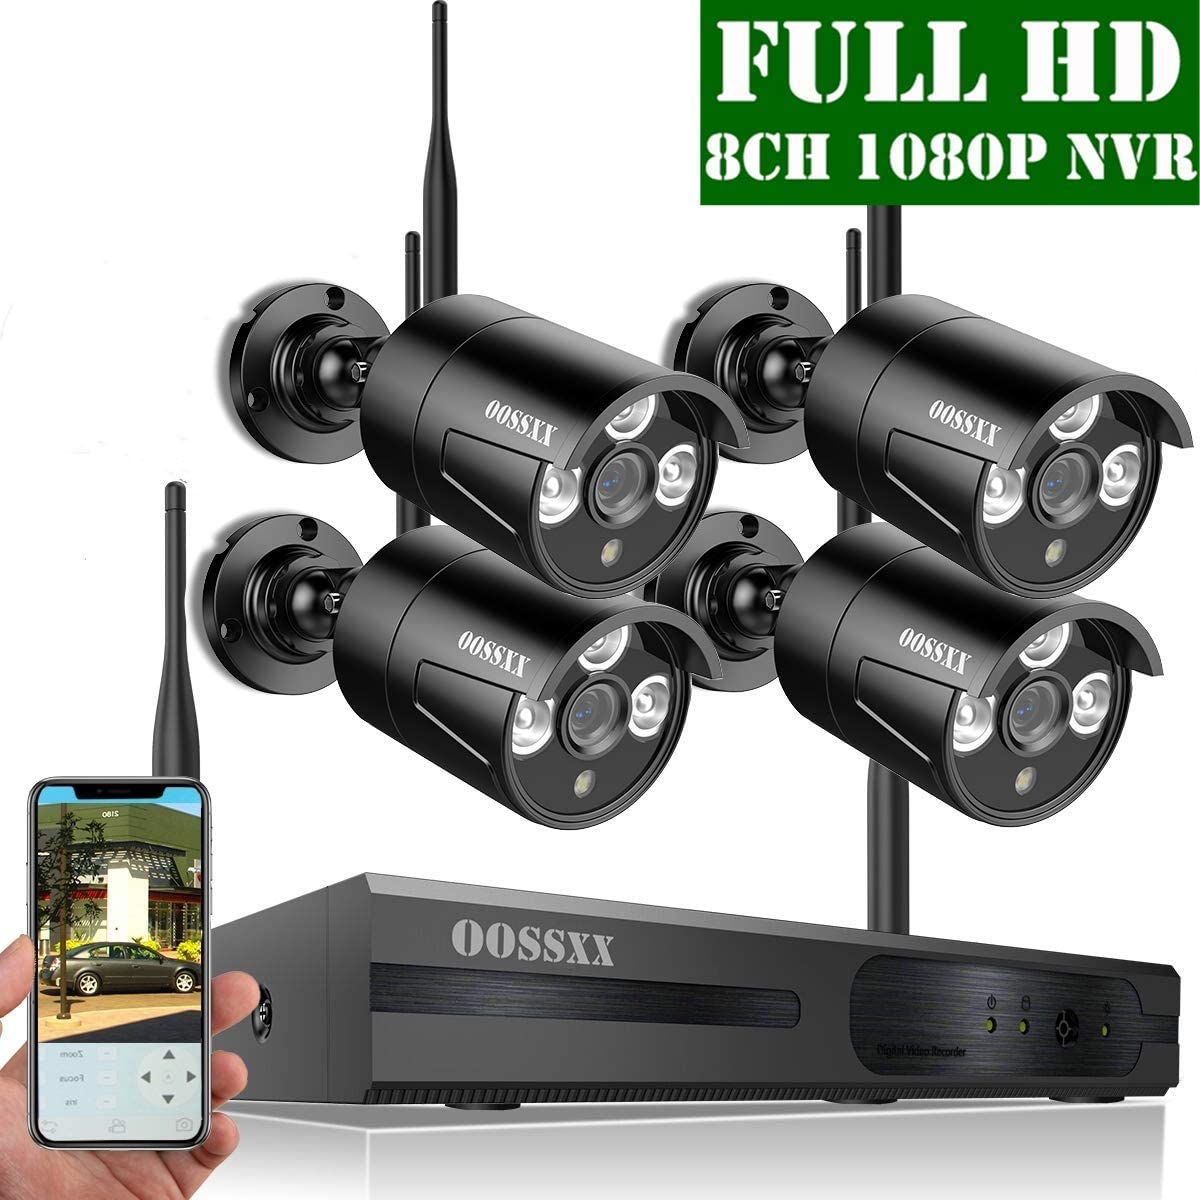 2019 Update HD 1080P 8-Channel Outdoor Wireless Security Camera System,4 pcs 1080P 2.0Megapixel Wireless IP67 Weatherproof Bullet IP Cameras,Plug Play,70FT Night Vision,P2P,App, No Hard Drive